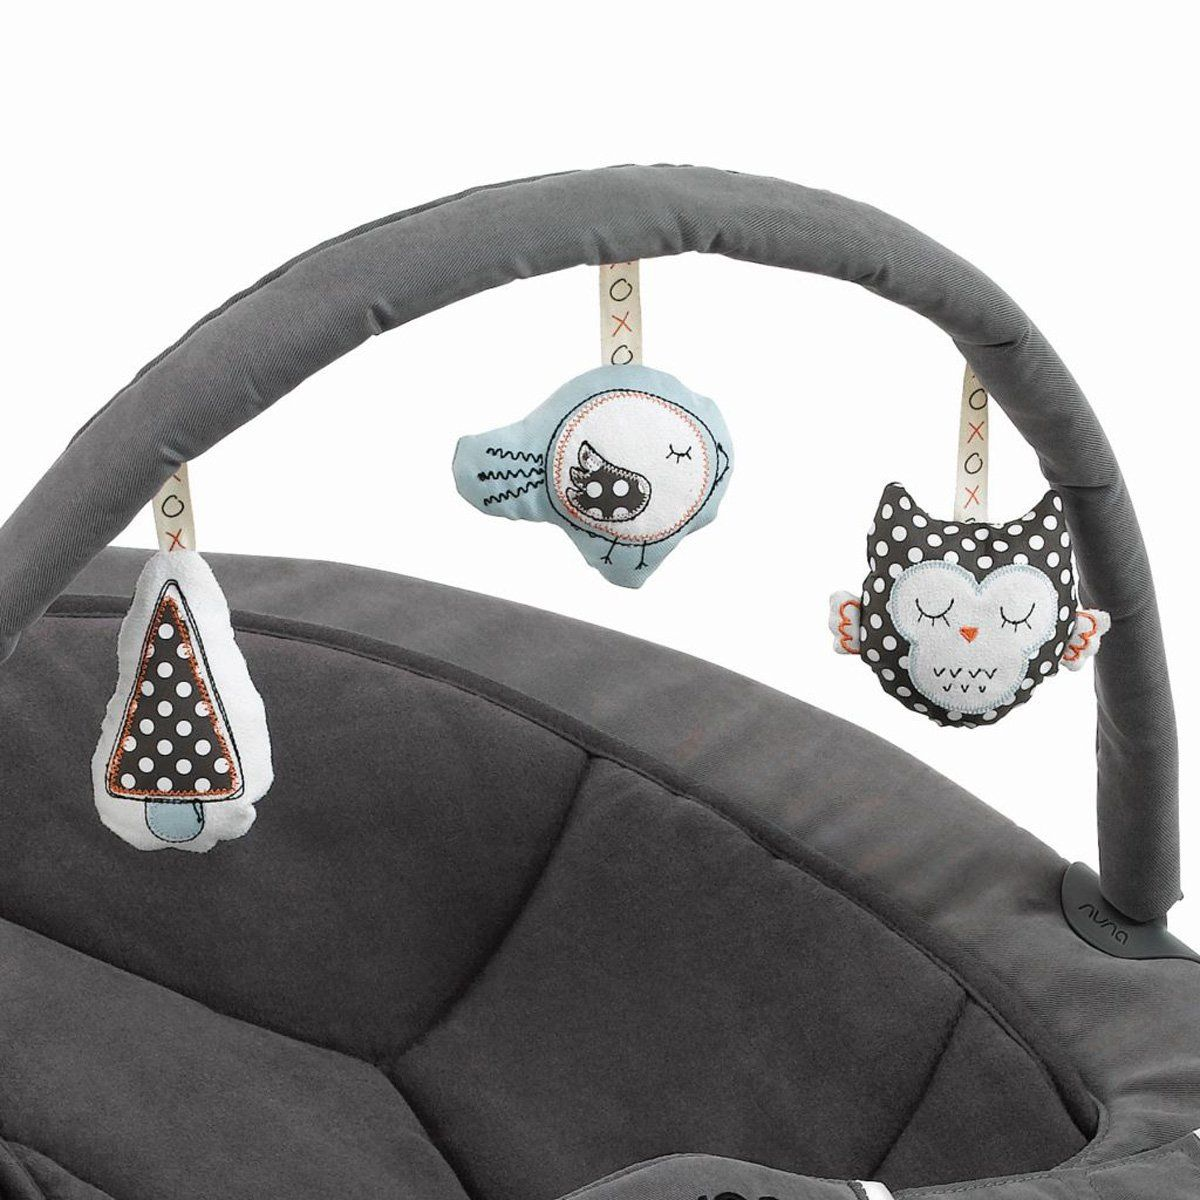 Accessorize your Nuna LEAF Toy Bar with engaging textures